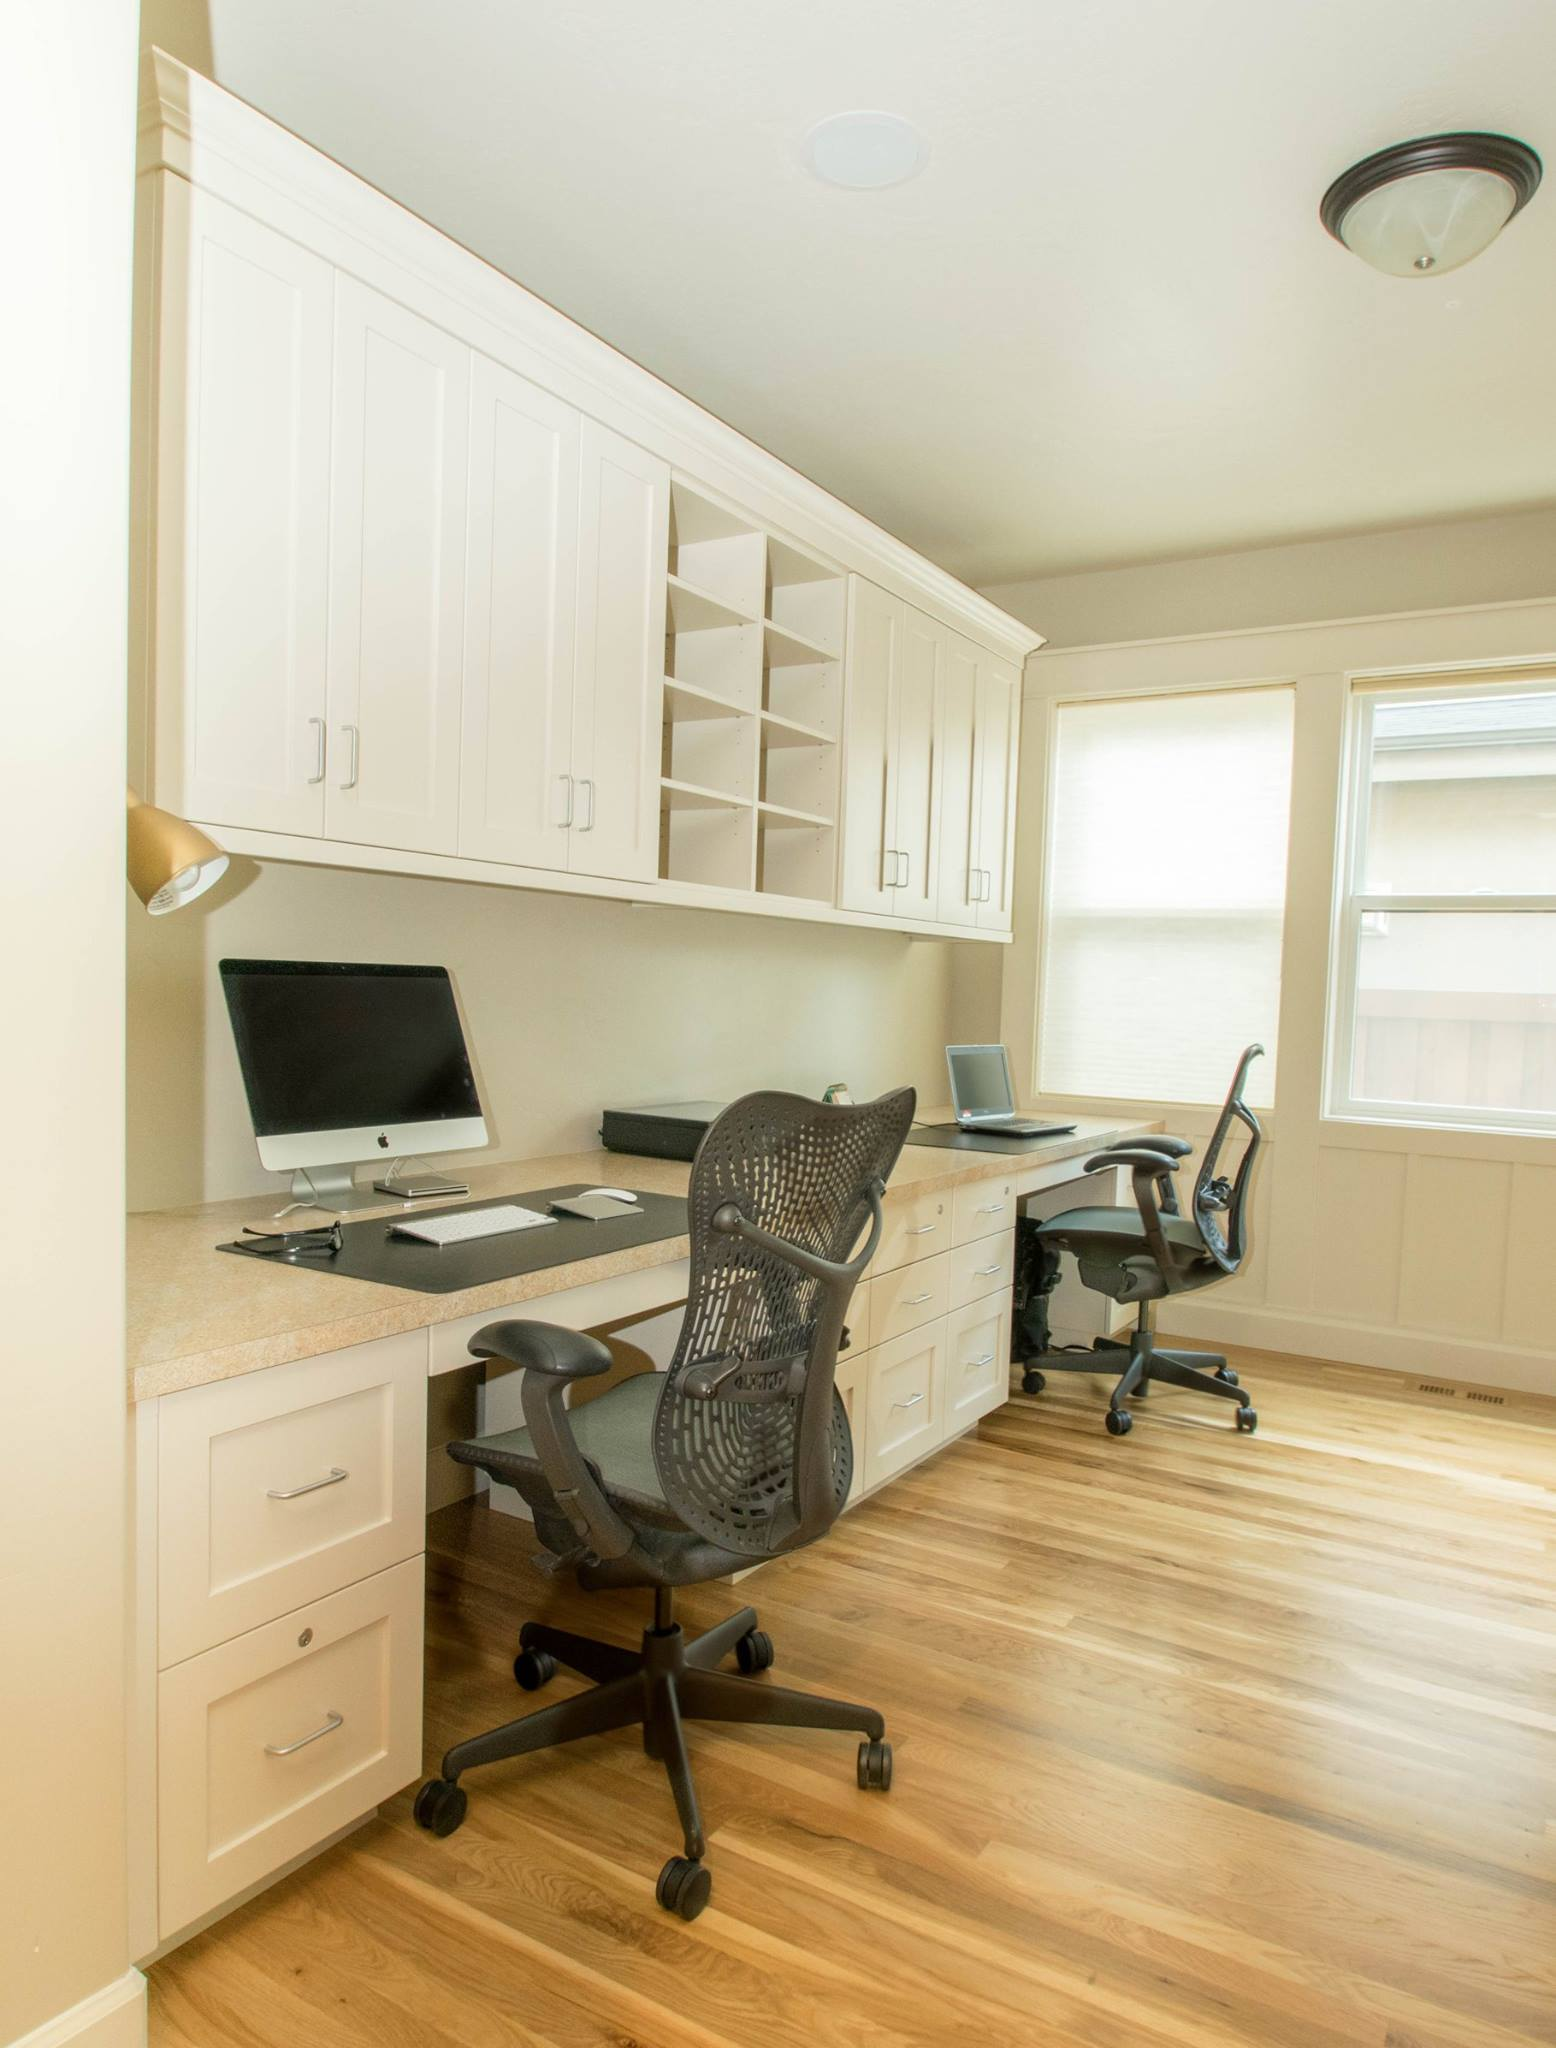 Home Office Cabinets Custom Cabinets Make For The Ultimate Home Office